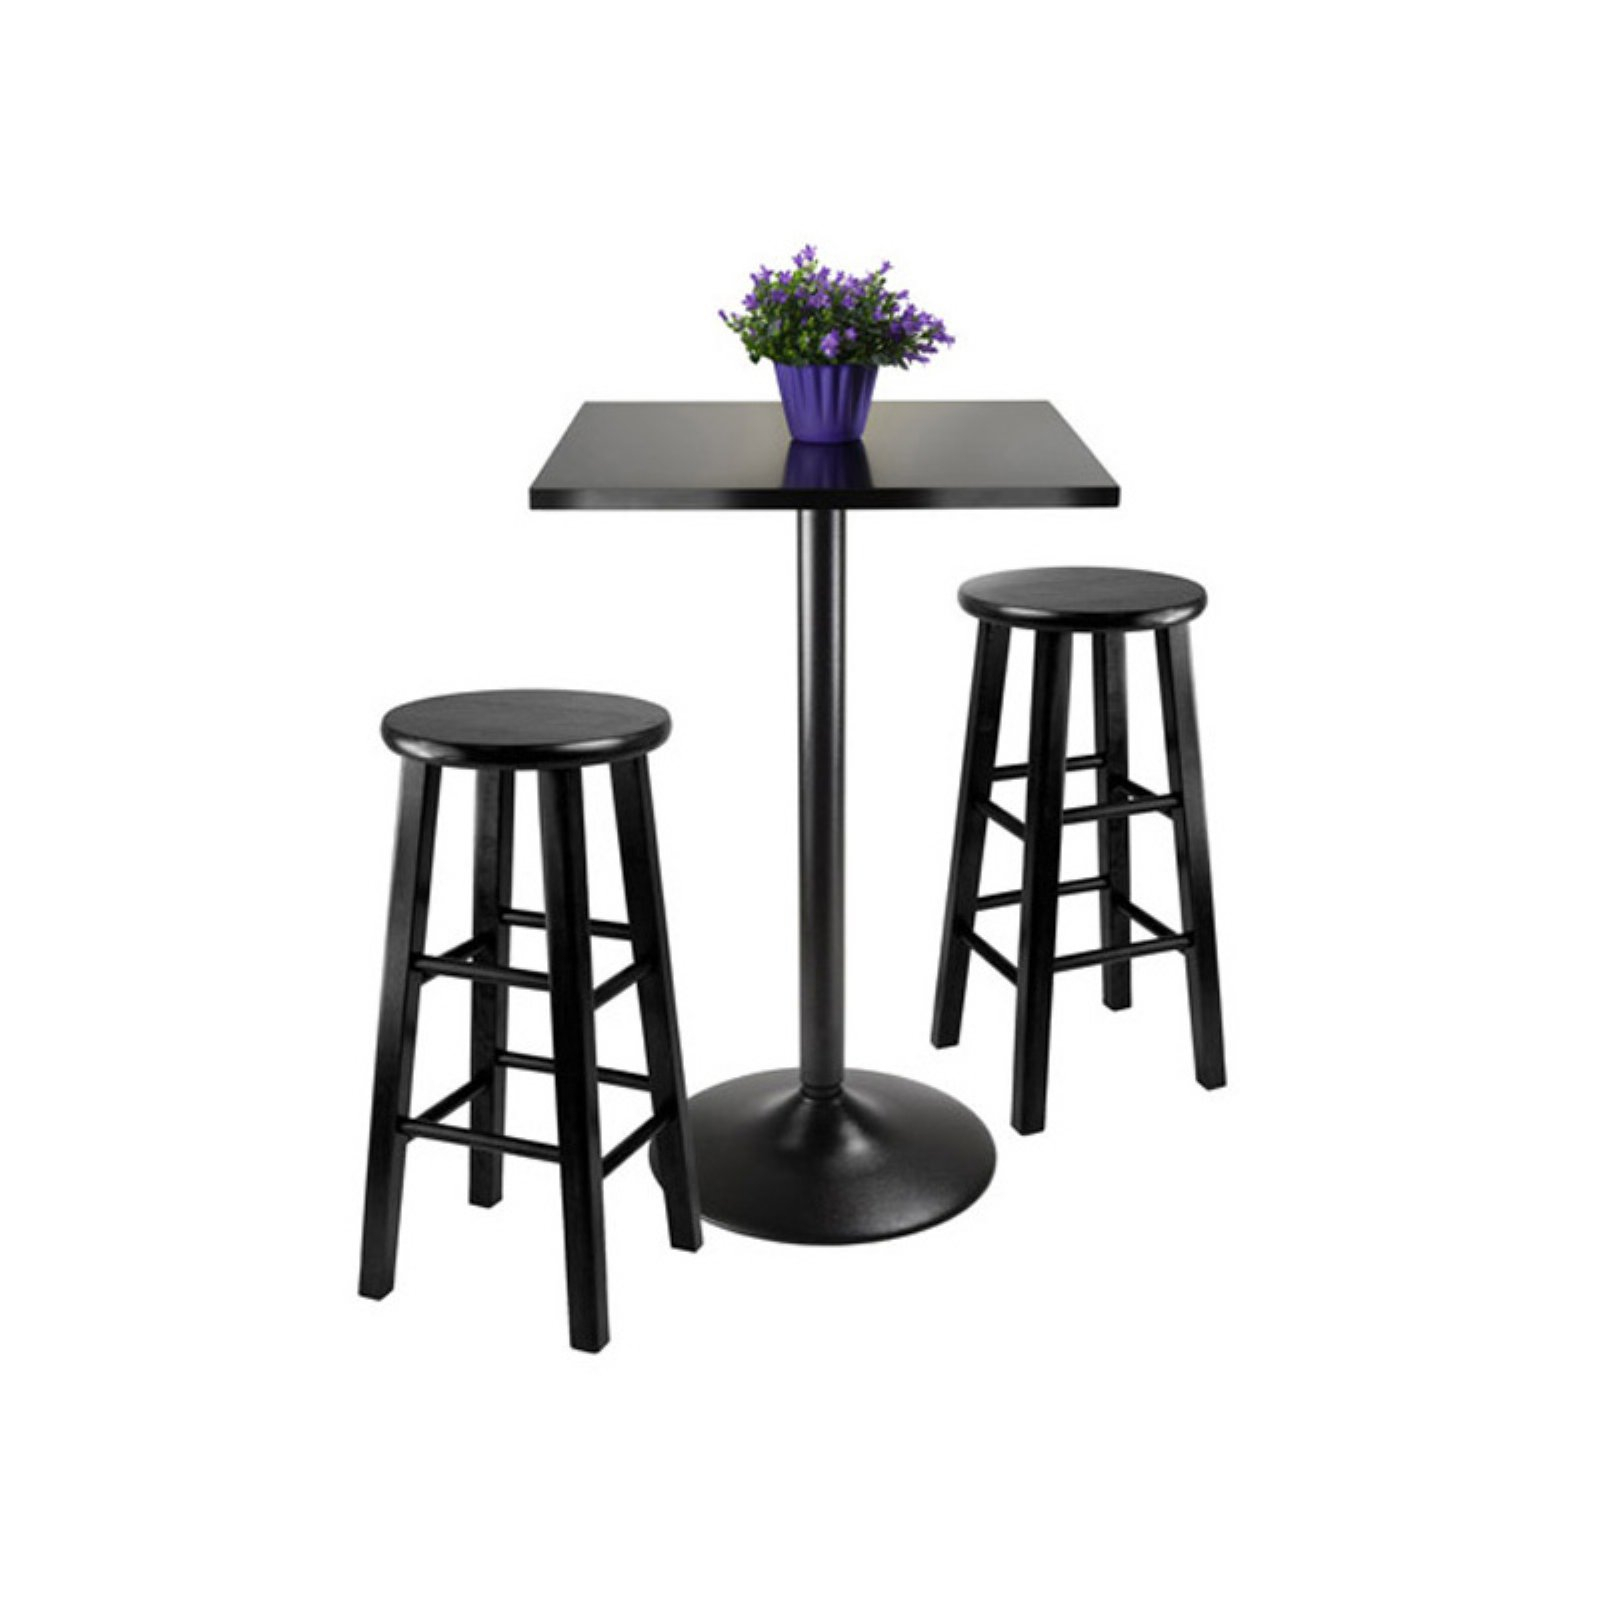 Winsome Obsidian Black 3 Piece Counter Height Dining Set With Stools In Latest Winsome 3 Piece Counter Height Dining Sets (Image 12 of 20)